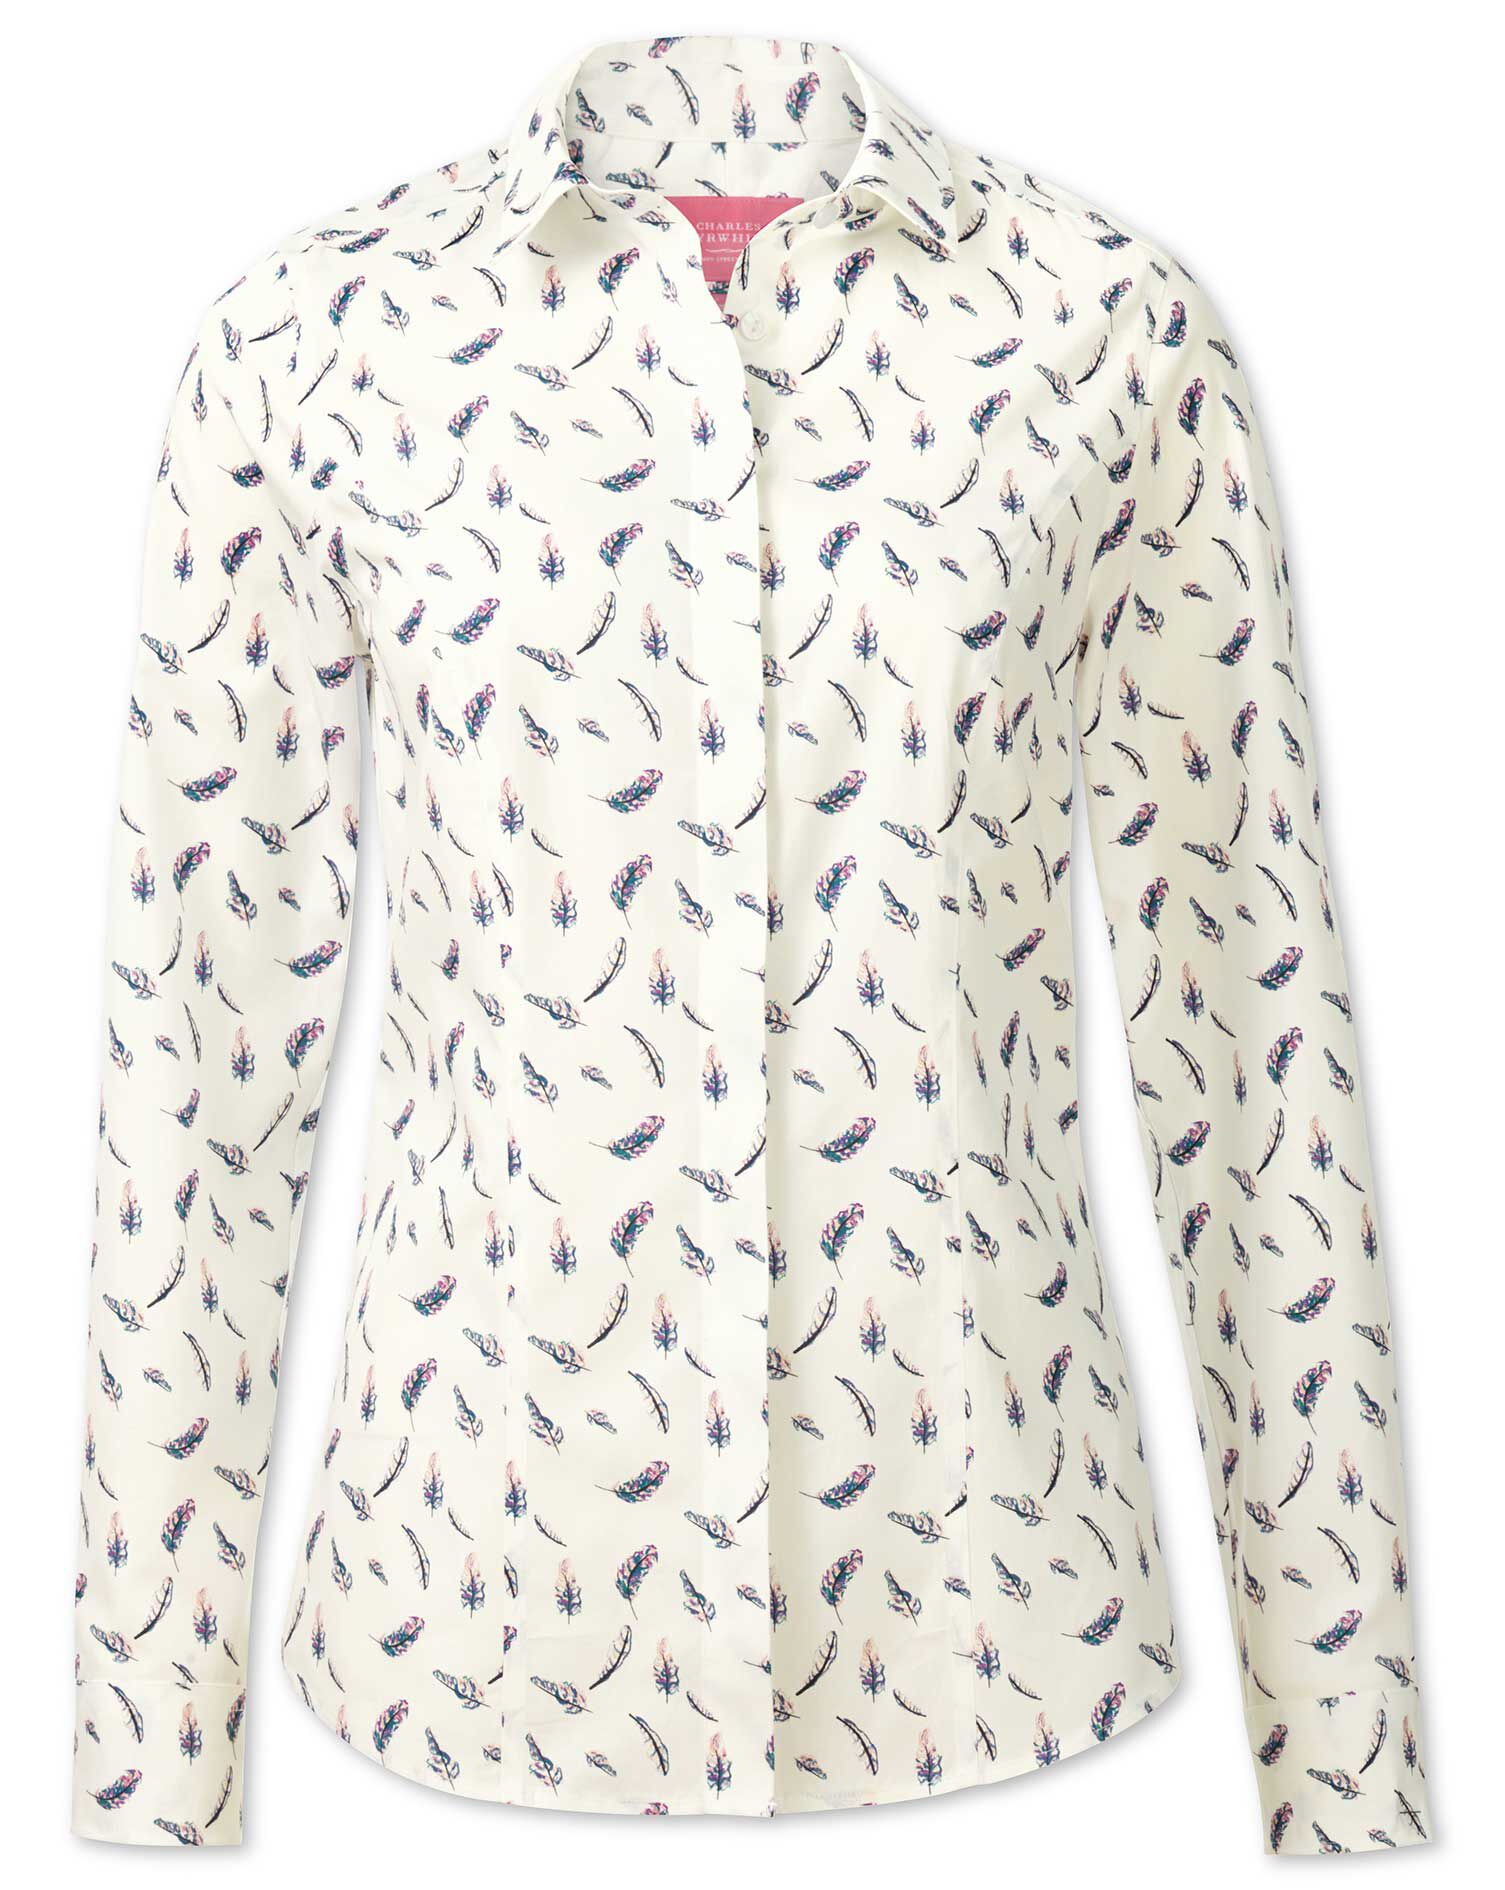 Women's Semi-Fitted Non-Iron Feather Print Cotton Shirt Size 20 by Charles Tyrwhitt